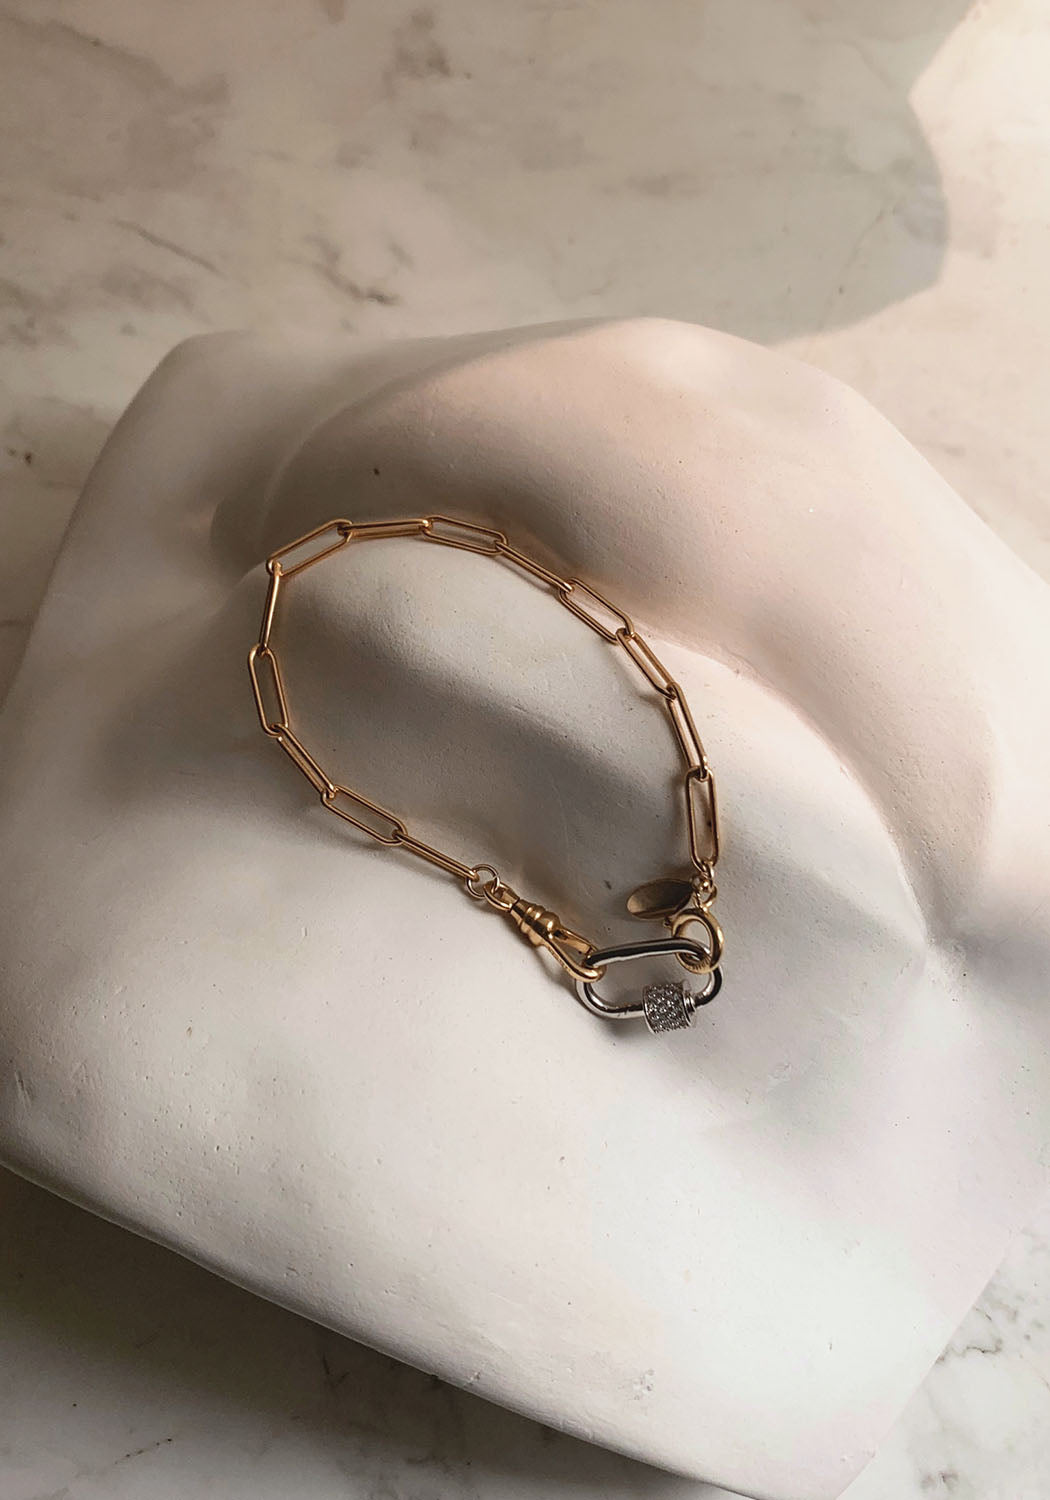 Cadaques 18K Gold Paperclip & Vintage Swivel